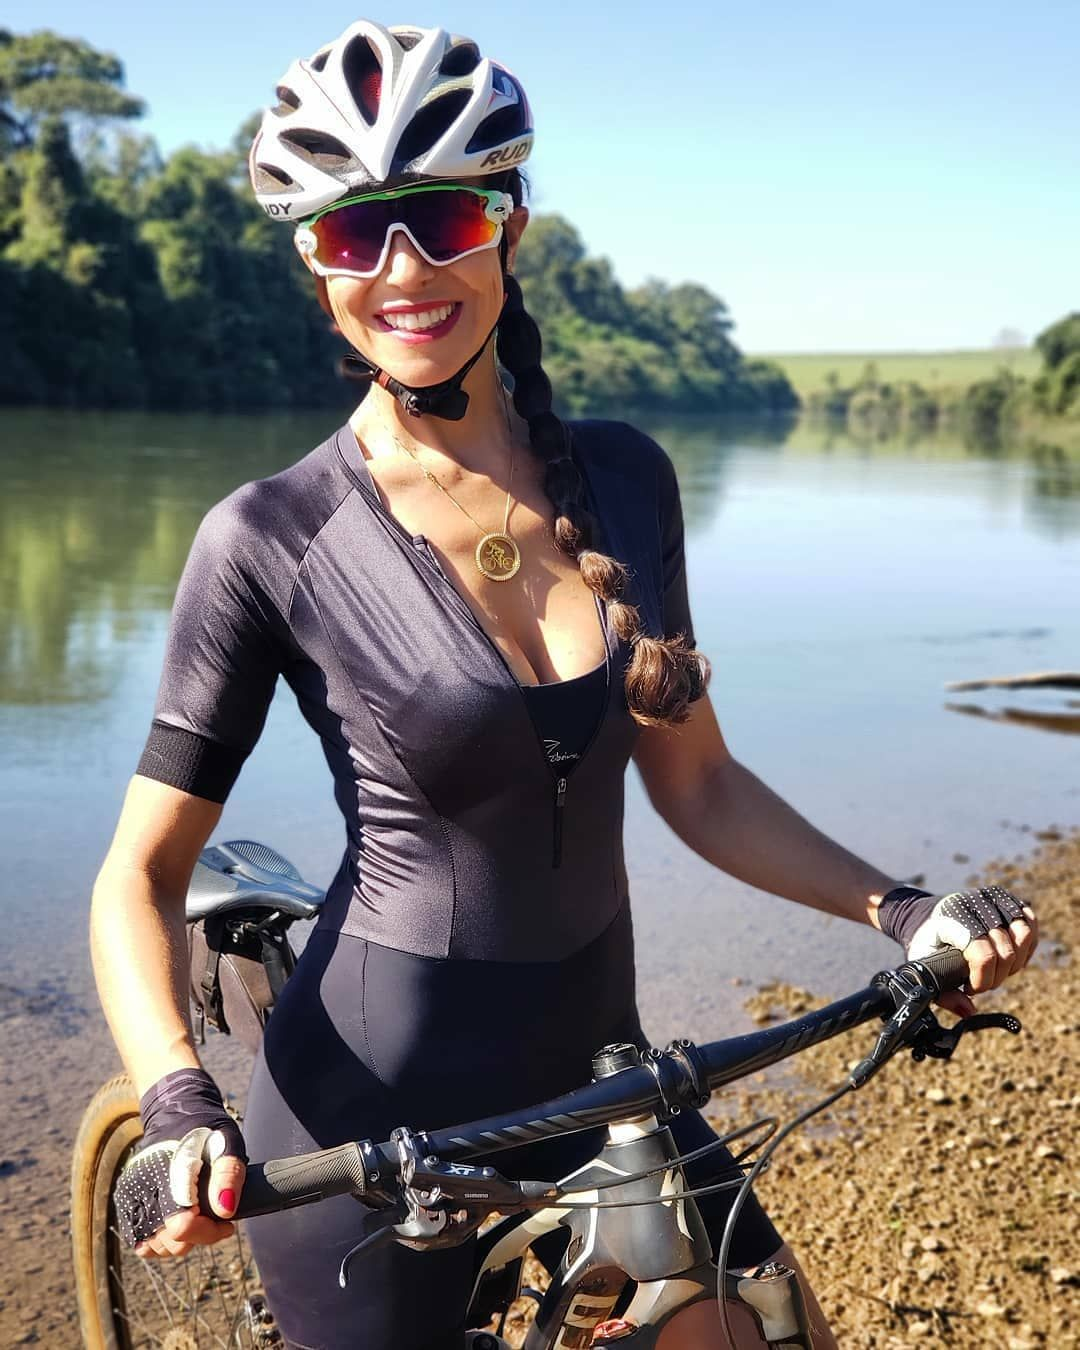 Cyclingbabes Awesome Day And Awesome View Rider Rakelsantanna Bomdia Goodmorning Pedal Mtb Bike Women Cycling Female Cyclist Triathlon Women